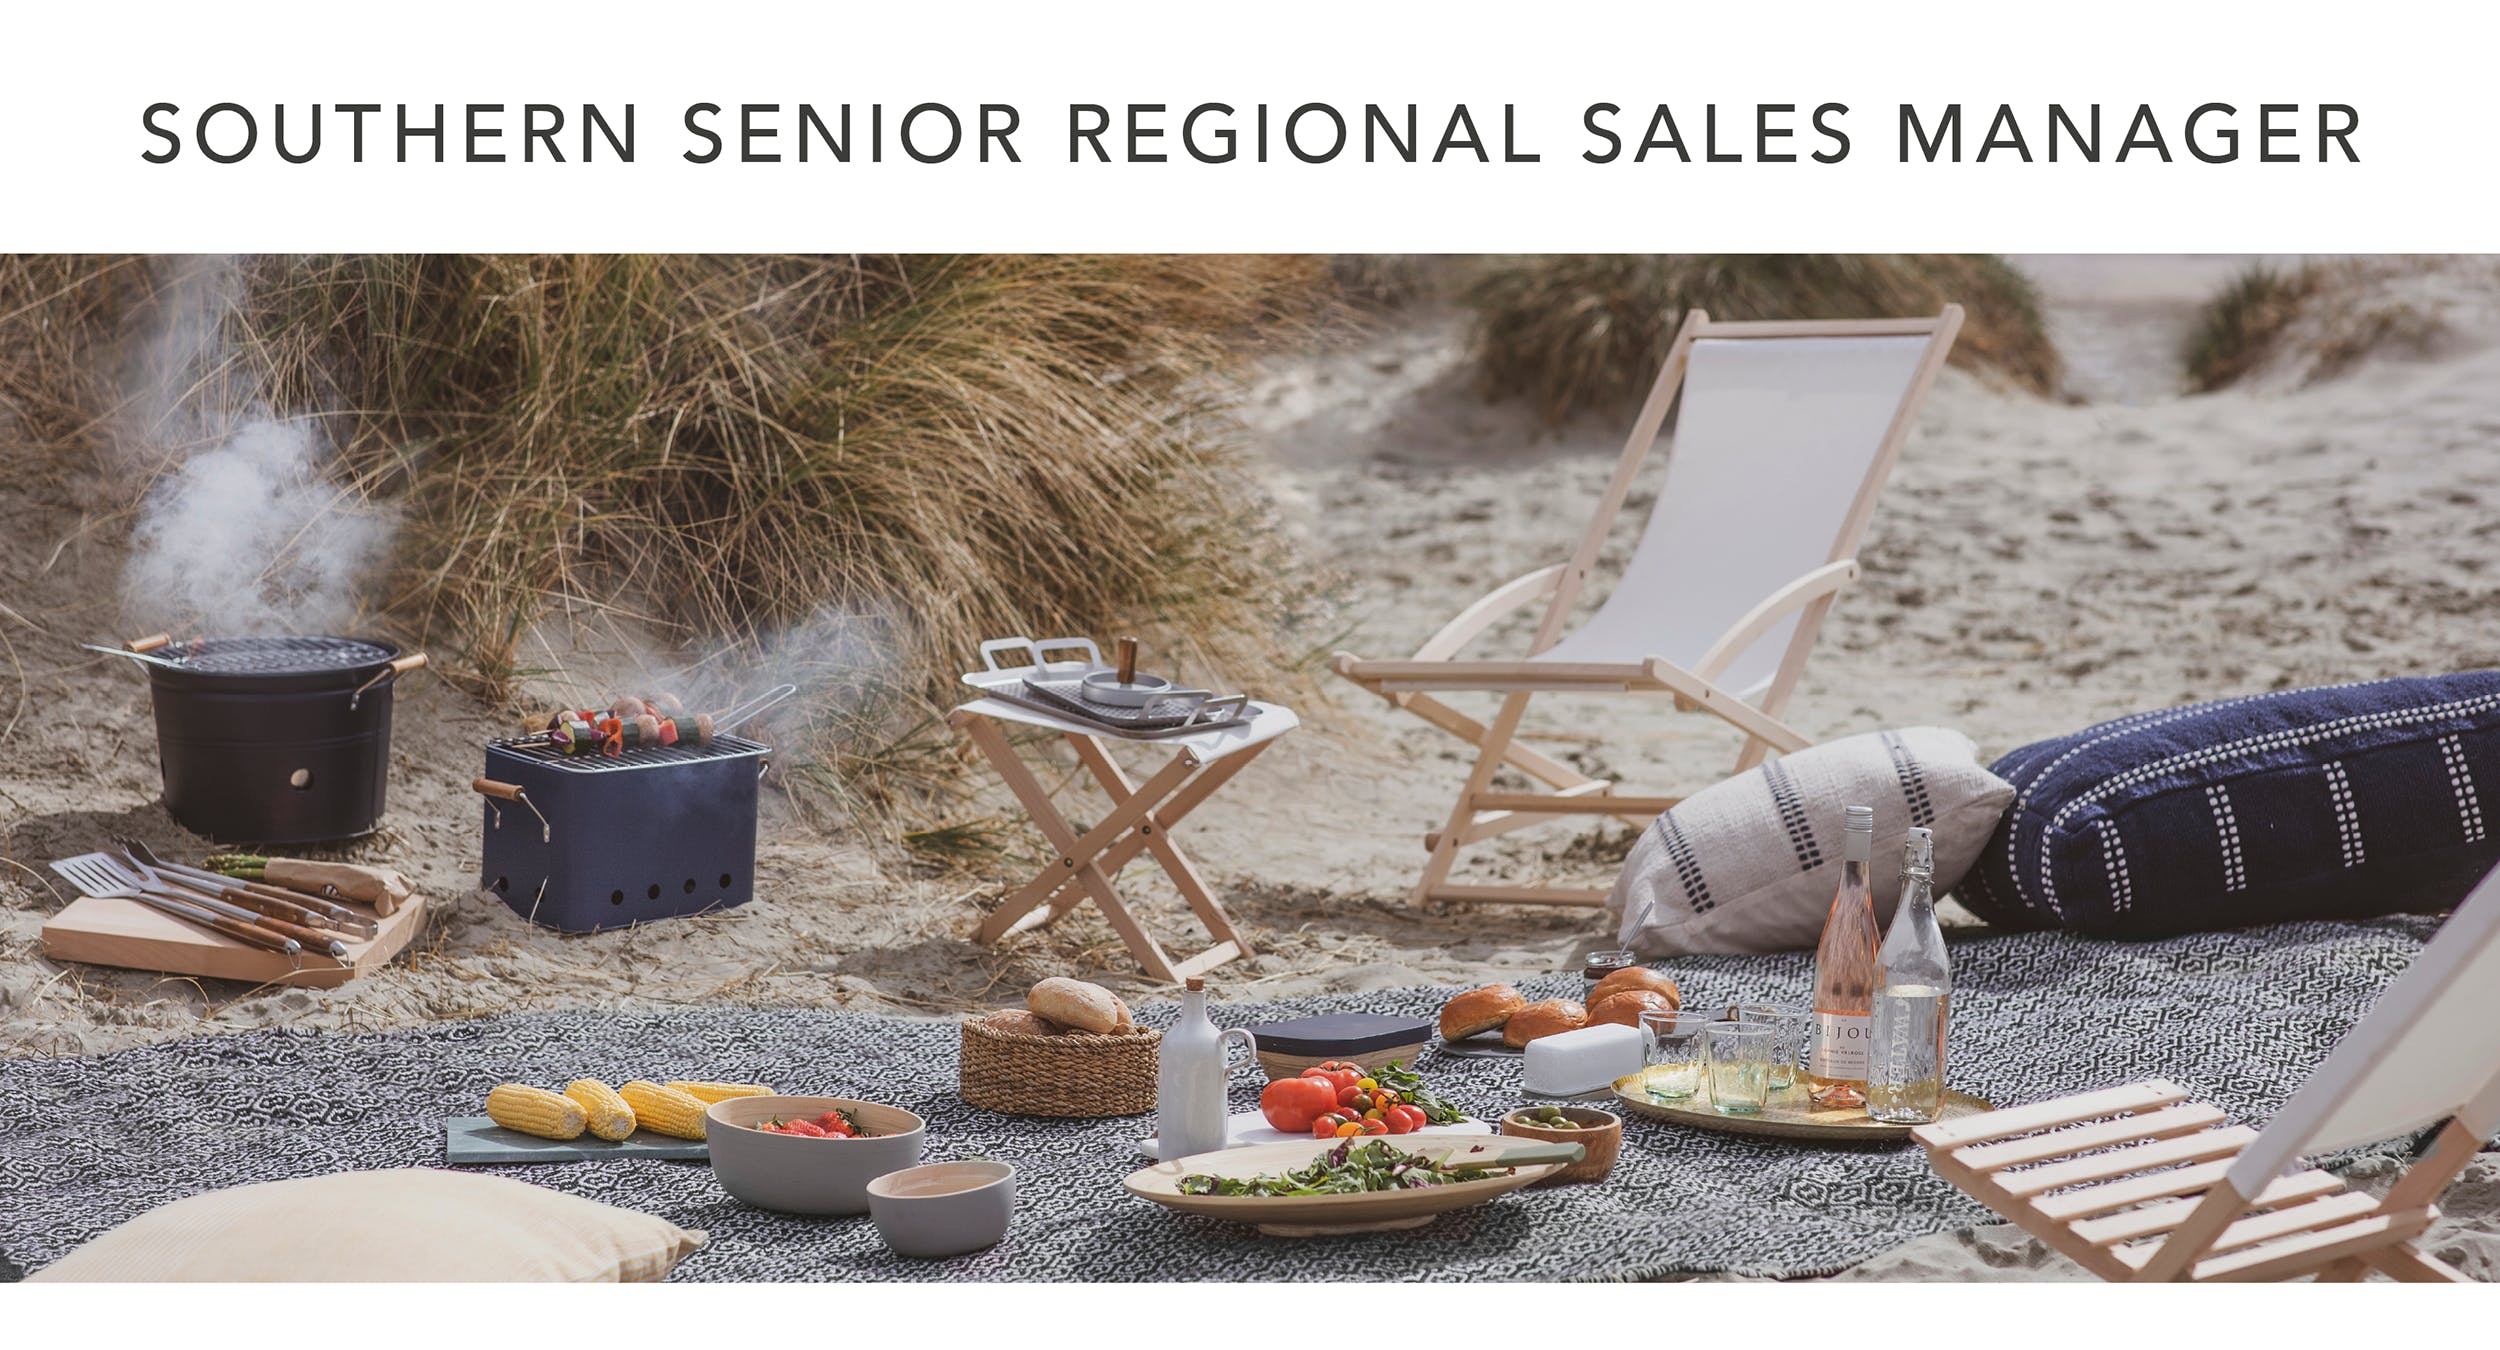 Southern Senior Regional Sales Manager